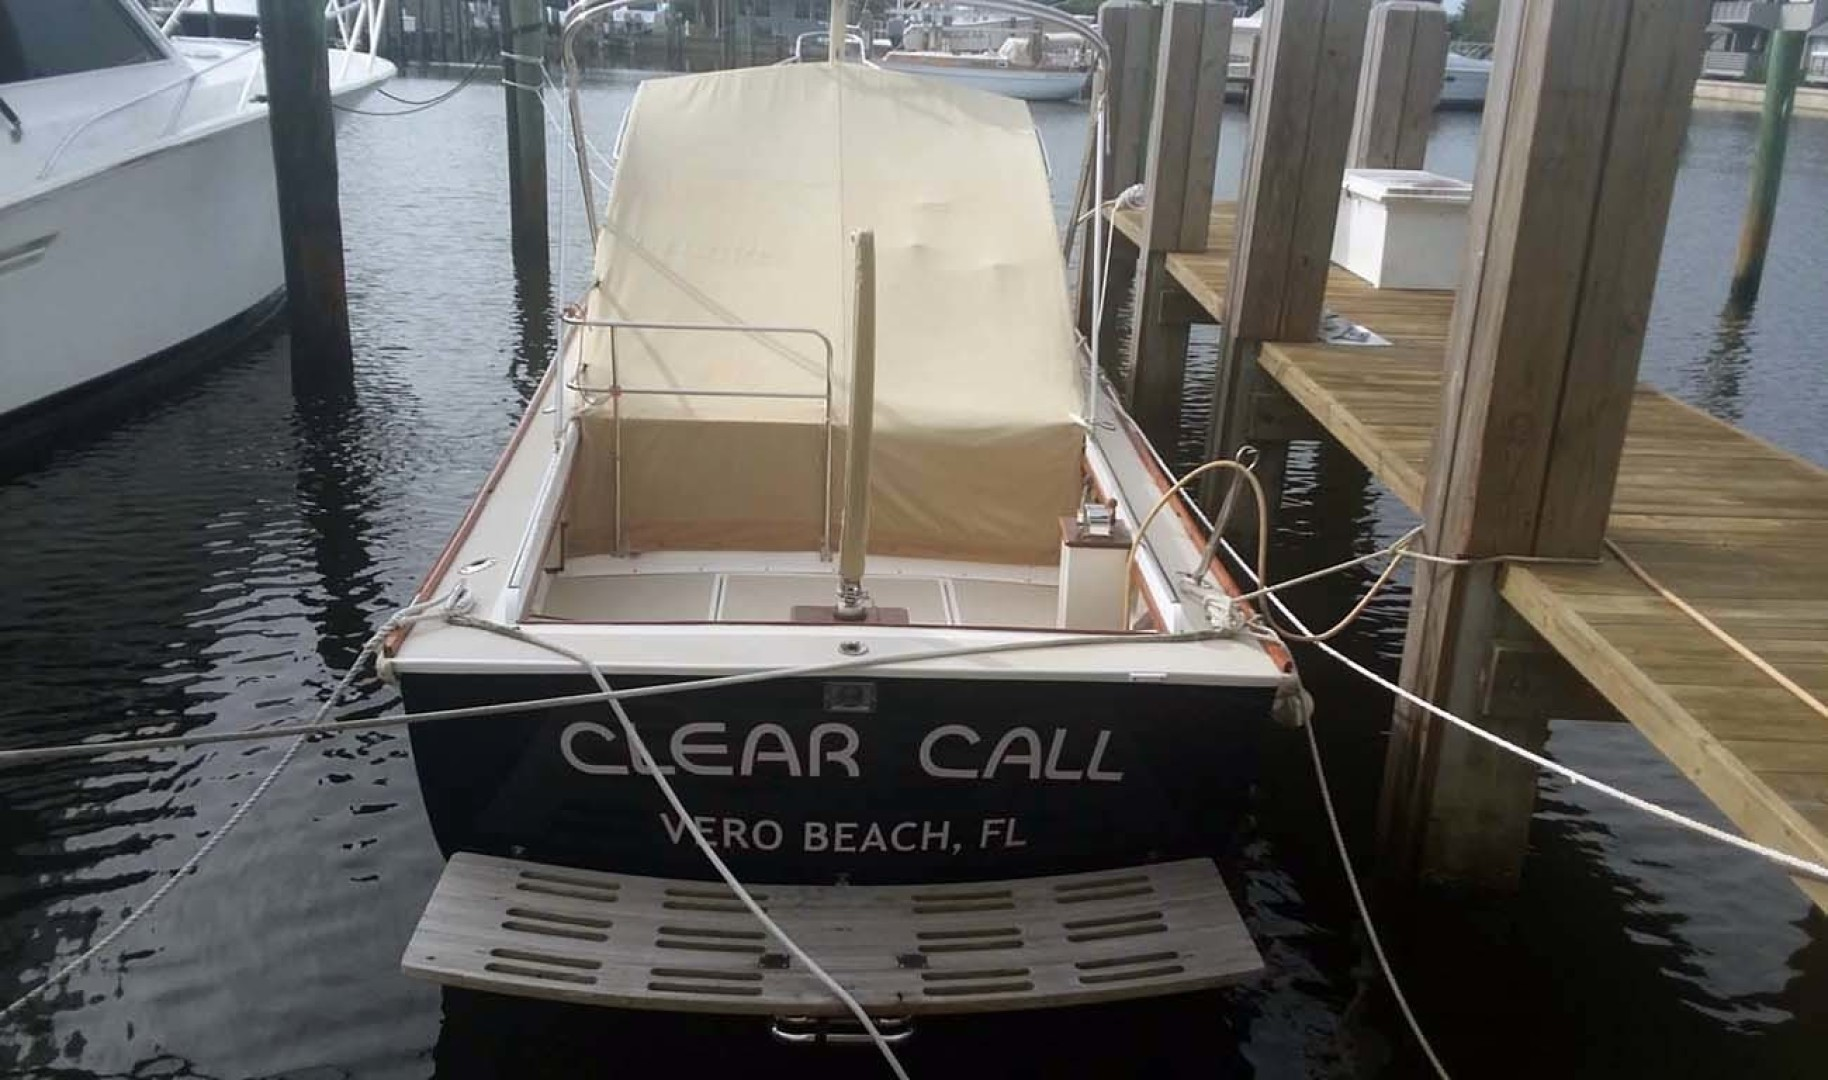 Dyer-29 Trunk Cabin Soft Top 1999-Clear Call Vero Beach-Florida-United States-Stern View with Cover-1509412 | Thumbnail